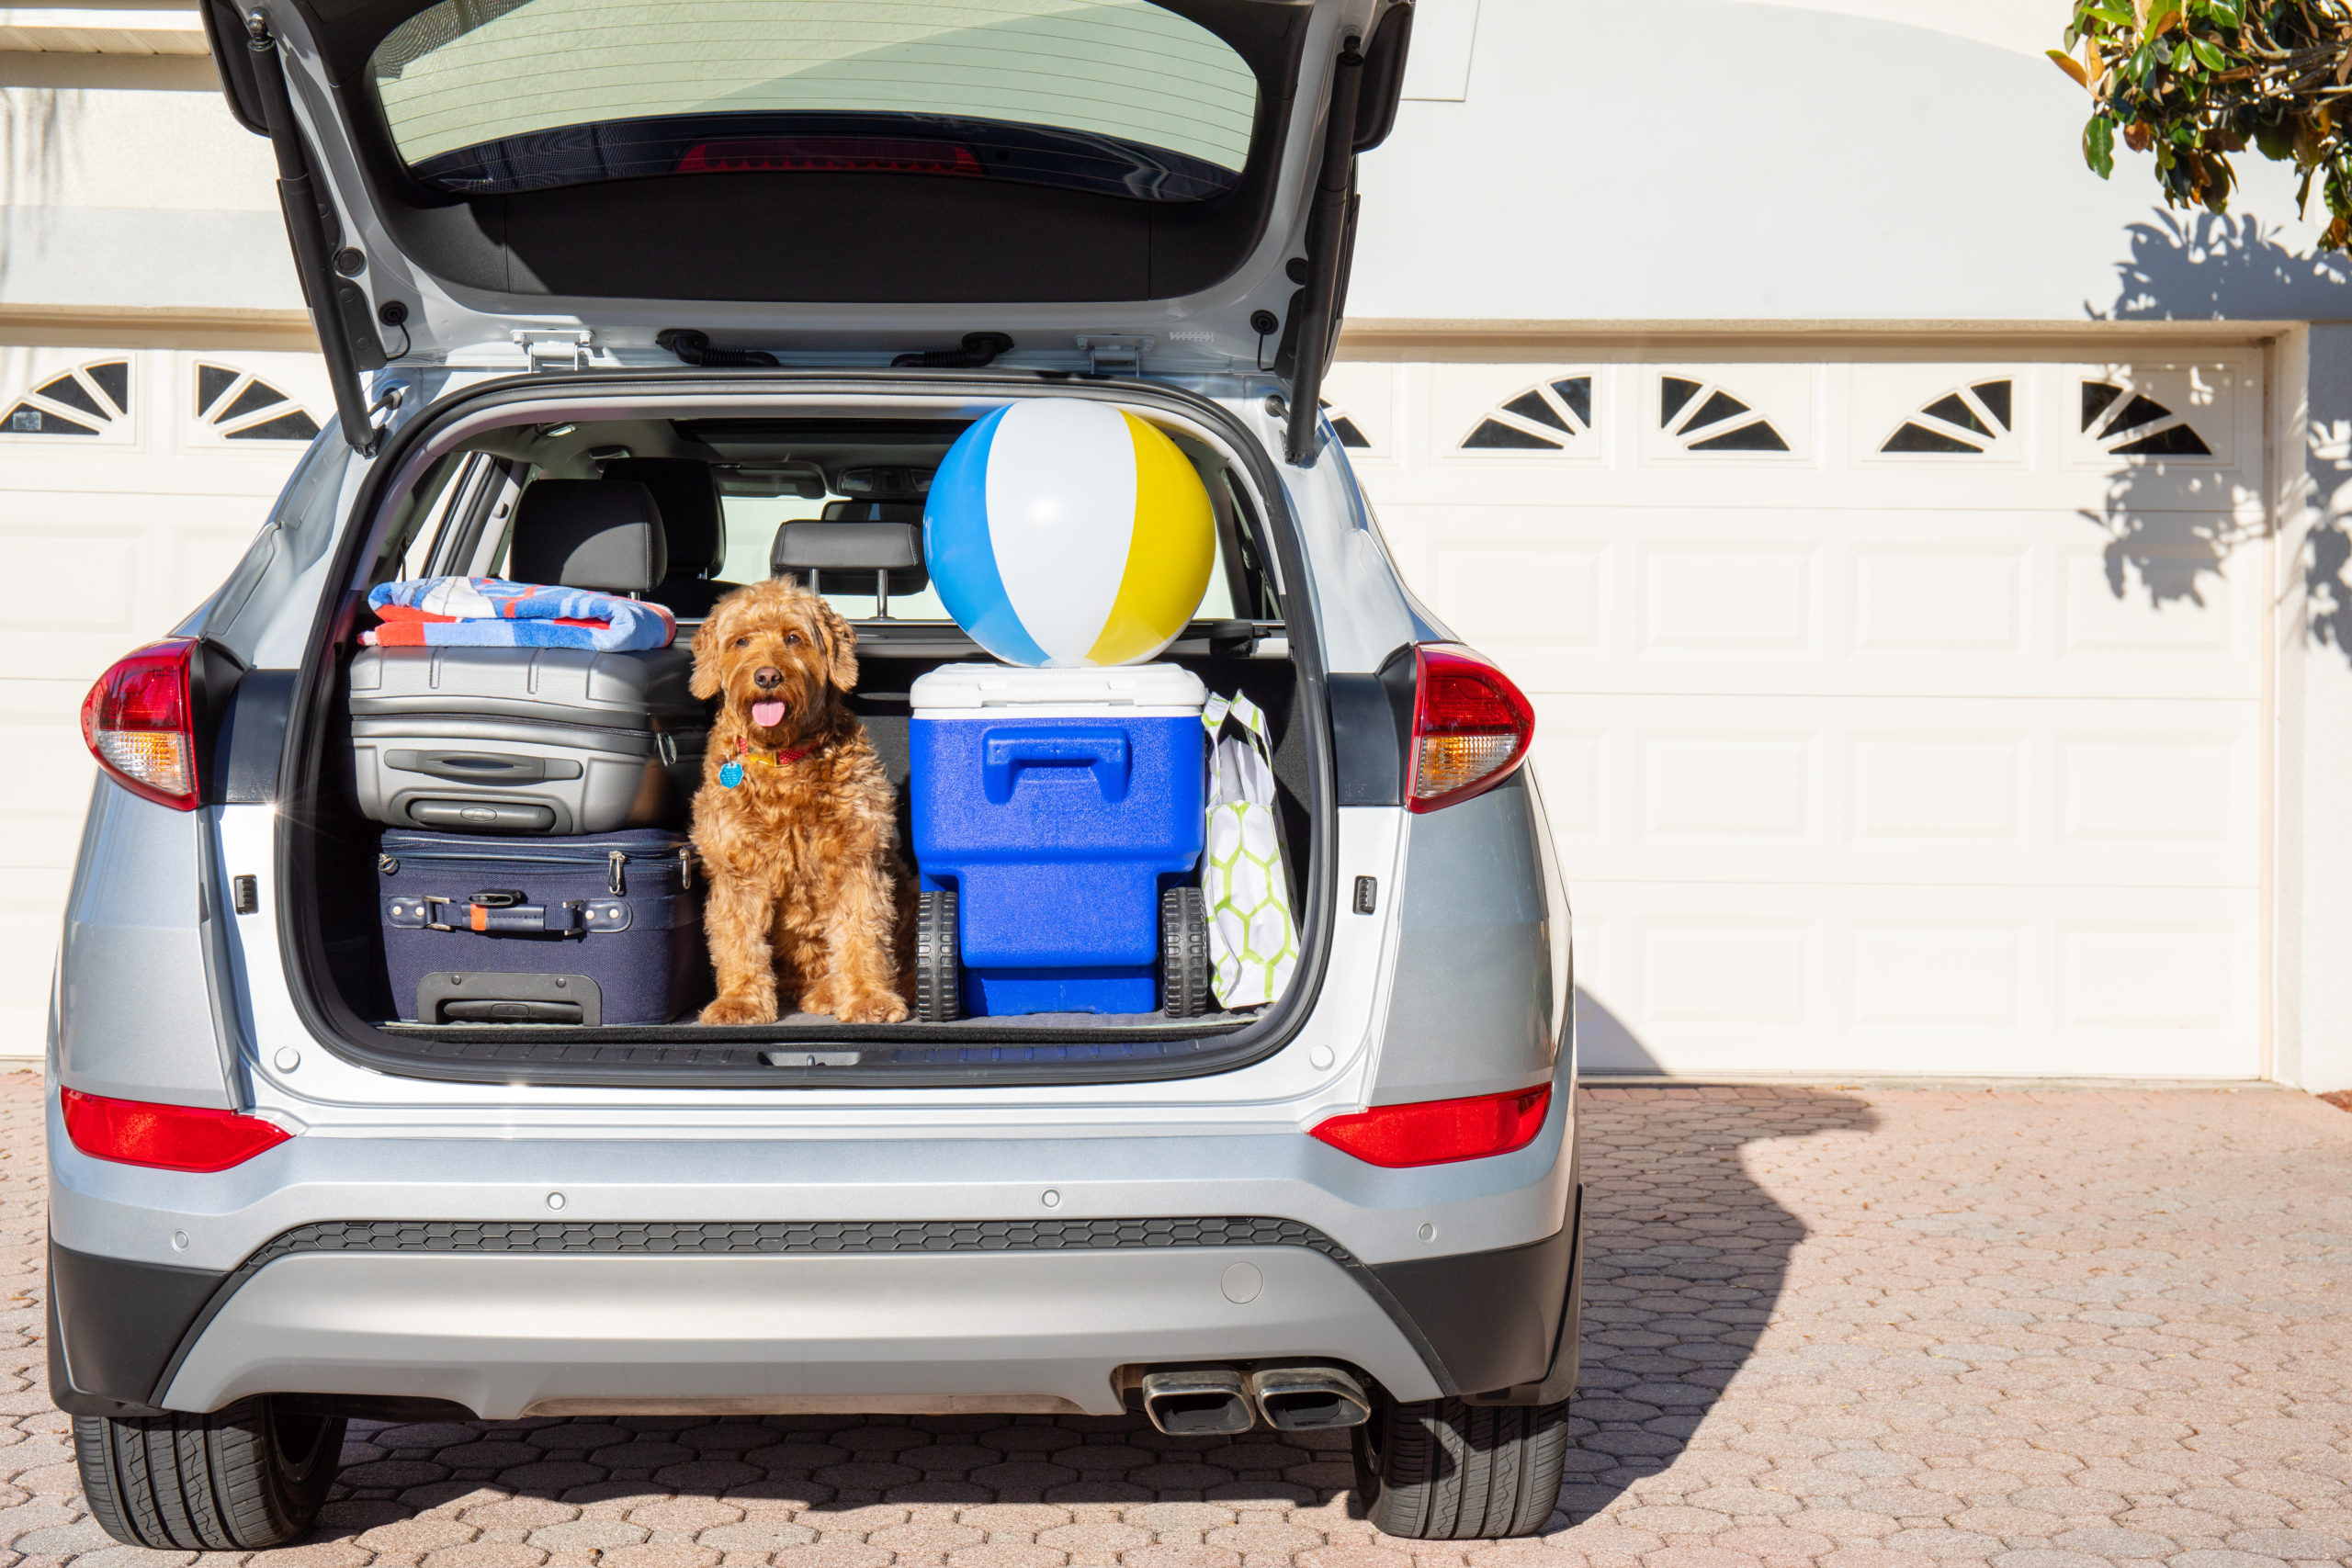 Car packed for family road trip